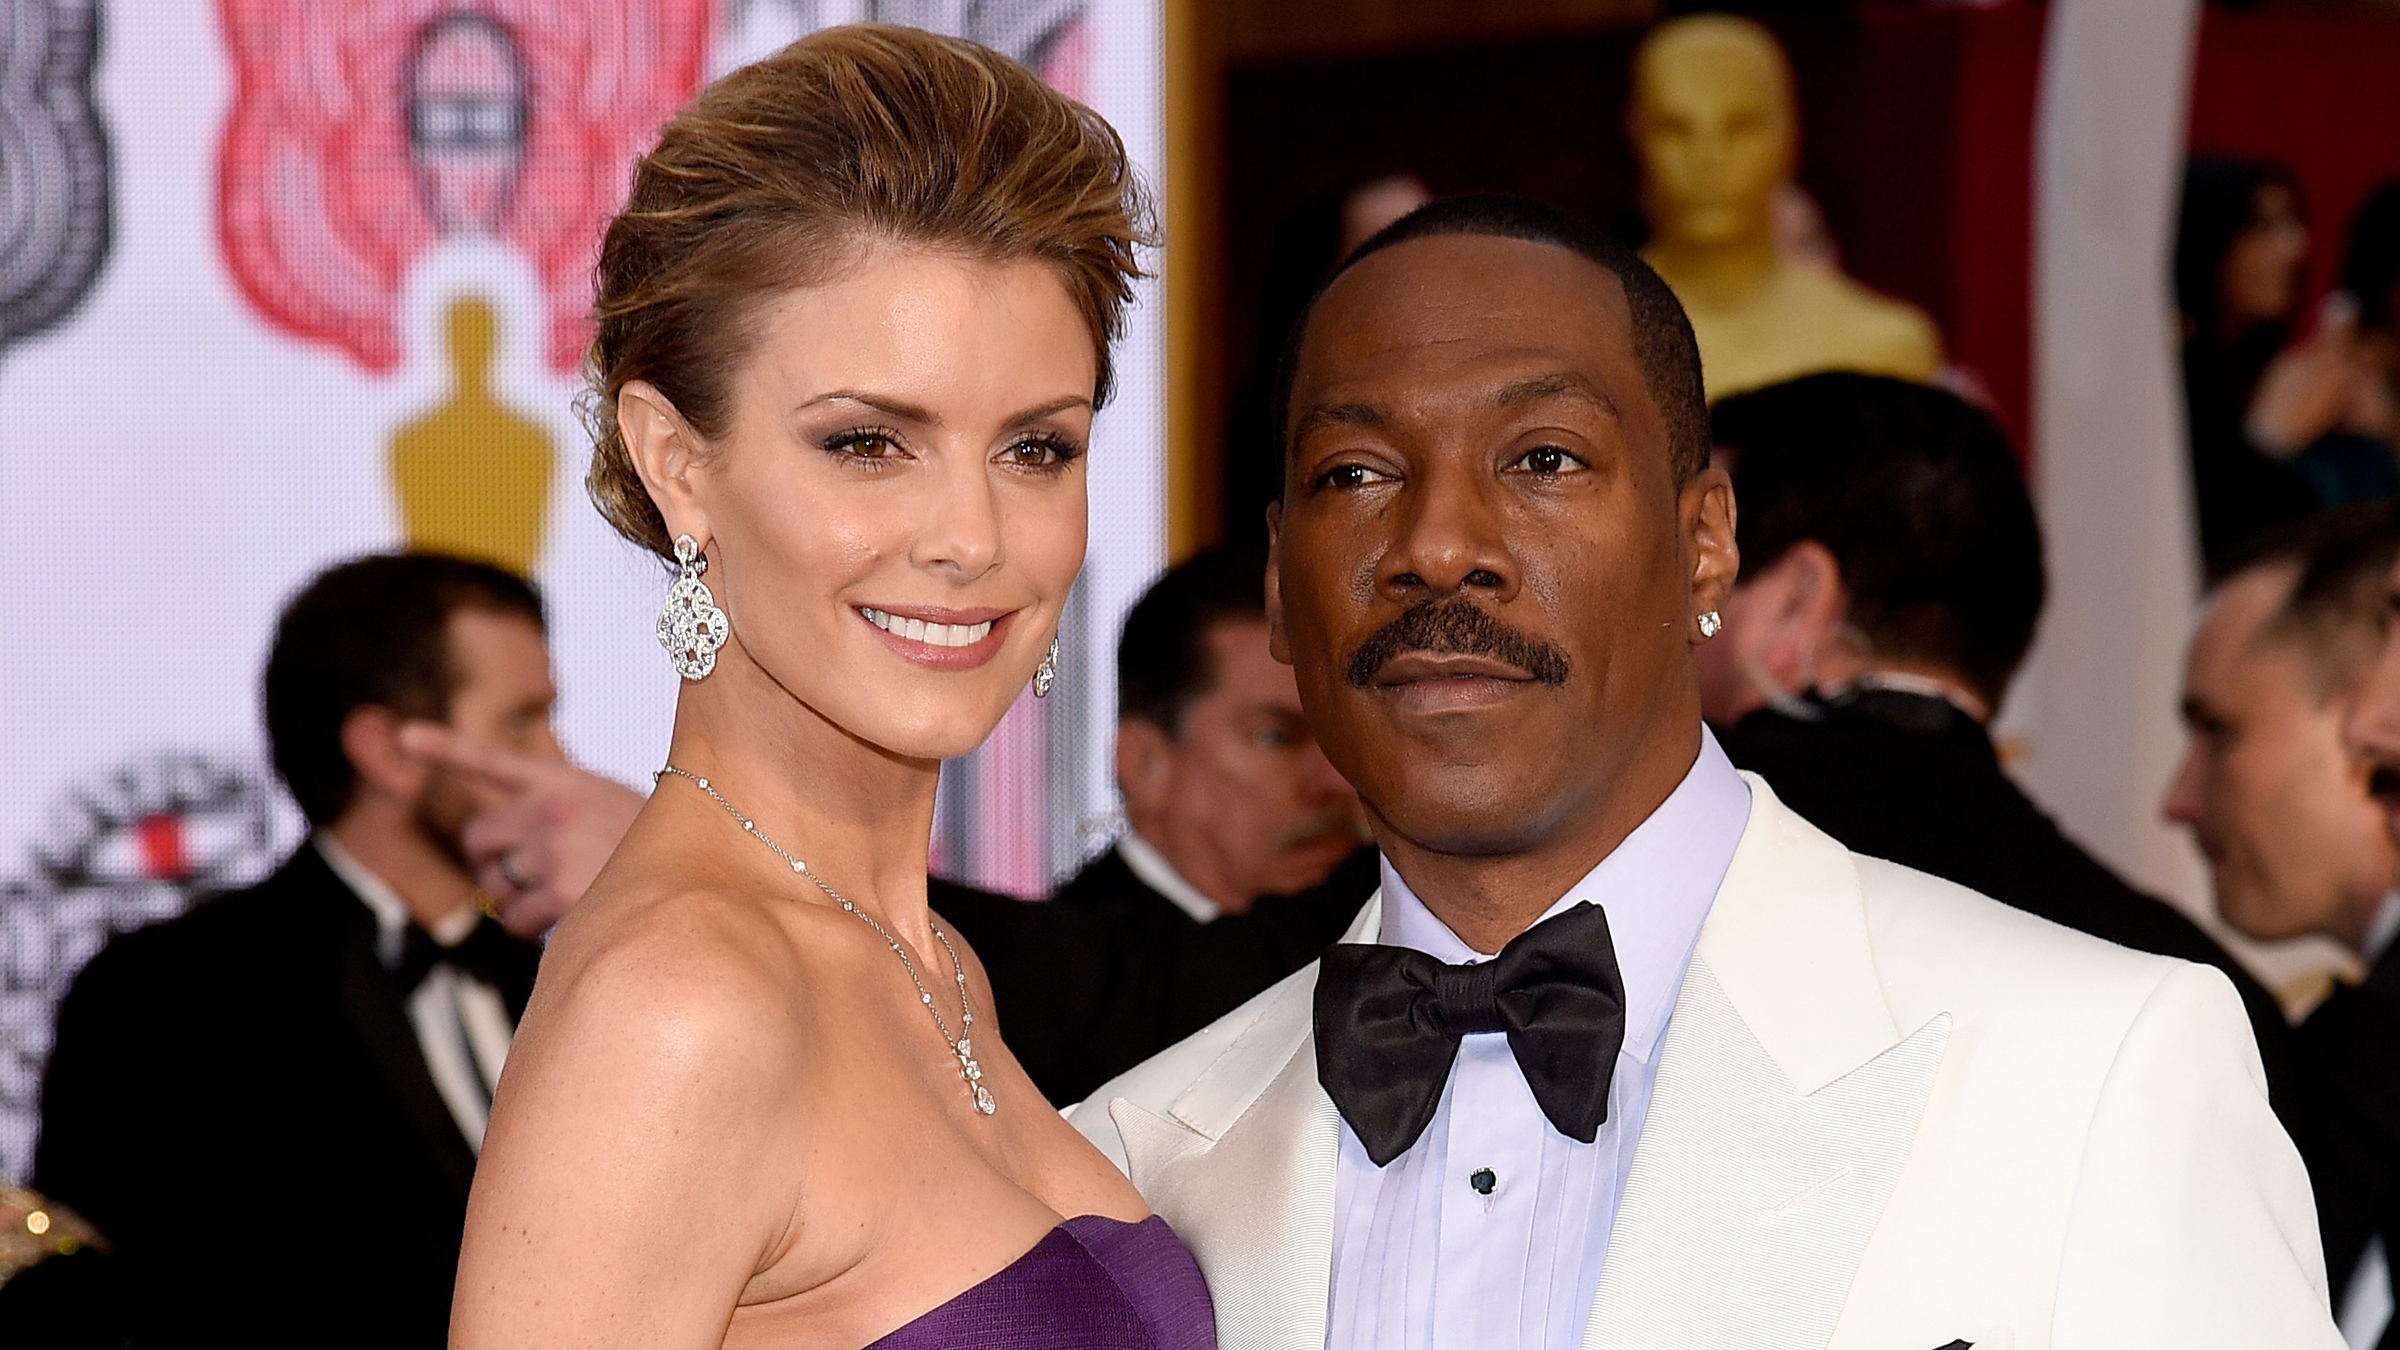 Actor Eddie Murphy (R) and model Paige Butcher attends the 87th Annual Academy Awards at Hollywood & Highland Center on February 22, 2015 in Hollywood, California. (Photo by Kevork Djansezian/Getty Images)